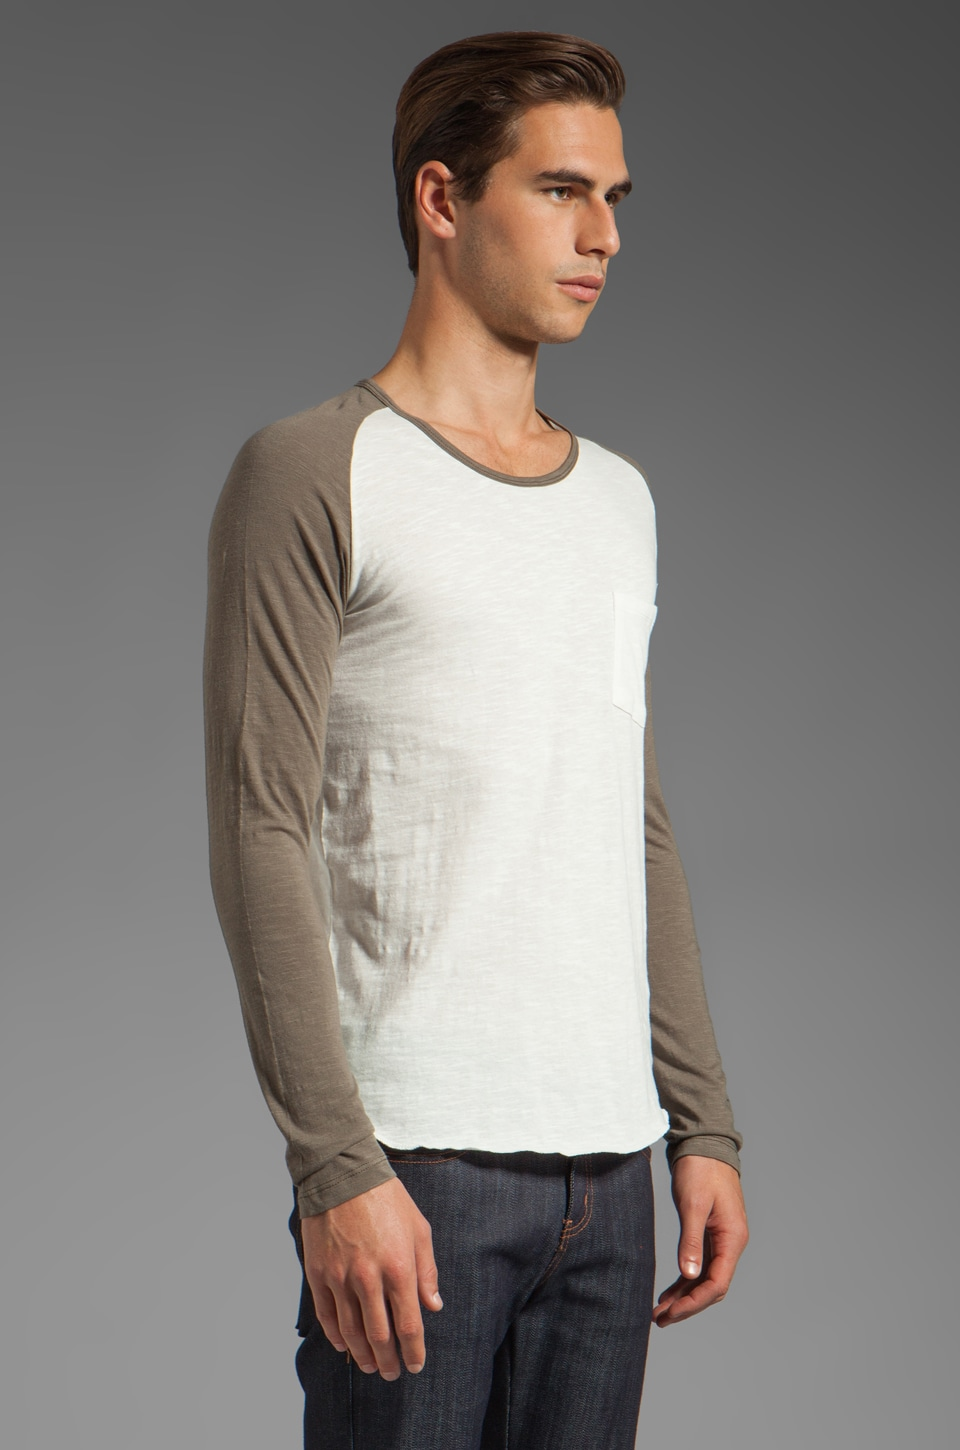 Shades of Grey by Micah Cohen Long Sleeve Baseball Tee in Natural Slub